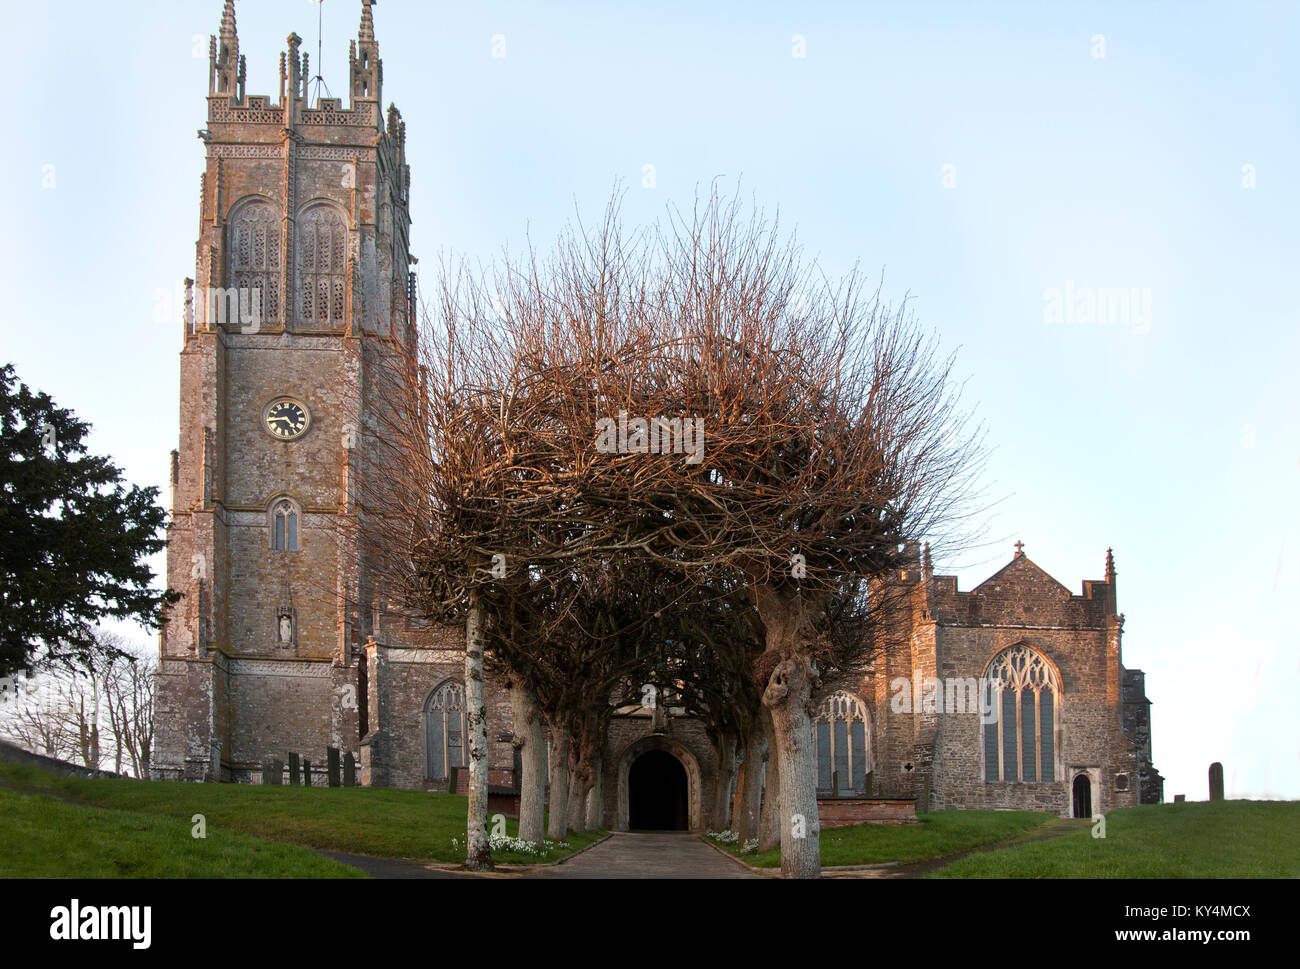 Grade I listed 15th century parish church of St Hierethas, Chittlehampton, nr Umberleigh, north Devon, England - Stock Image